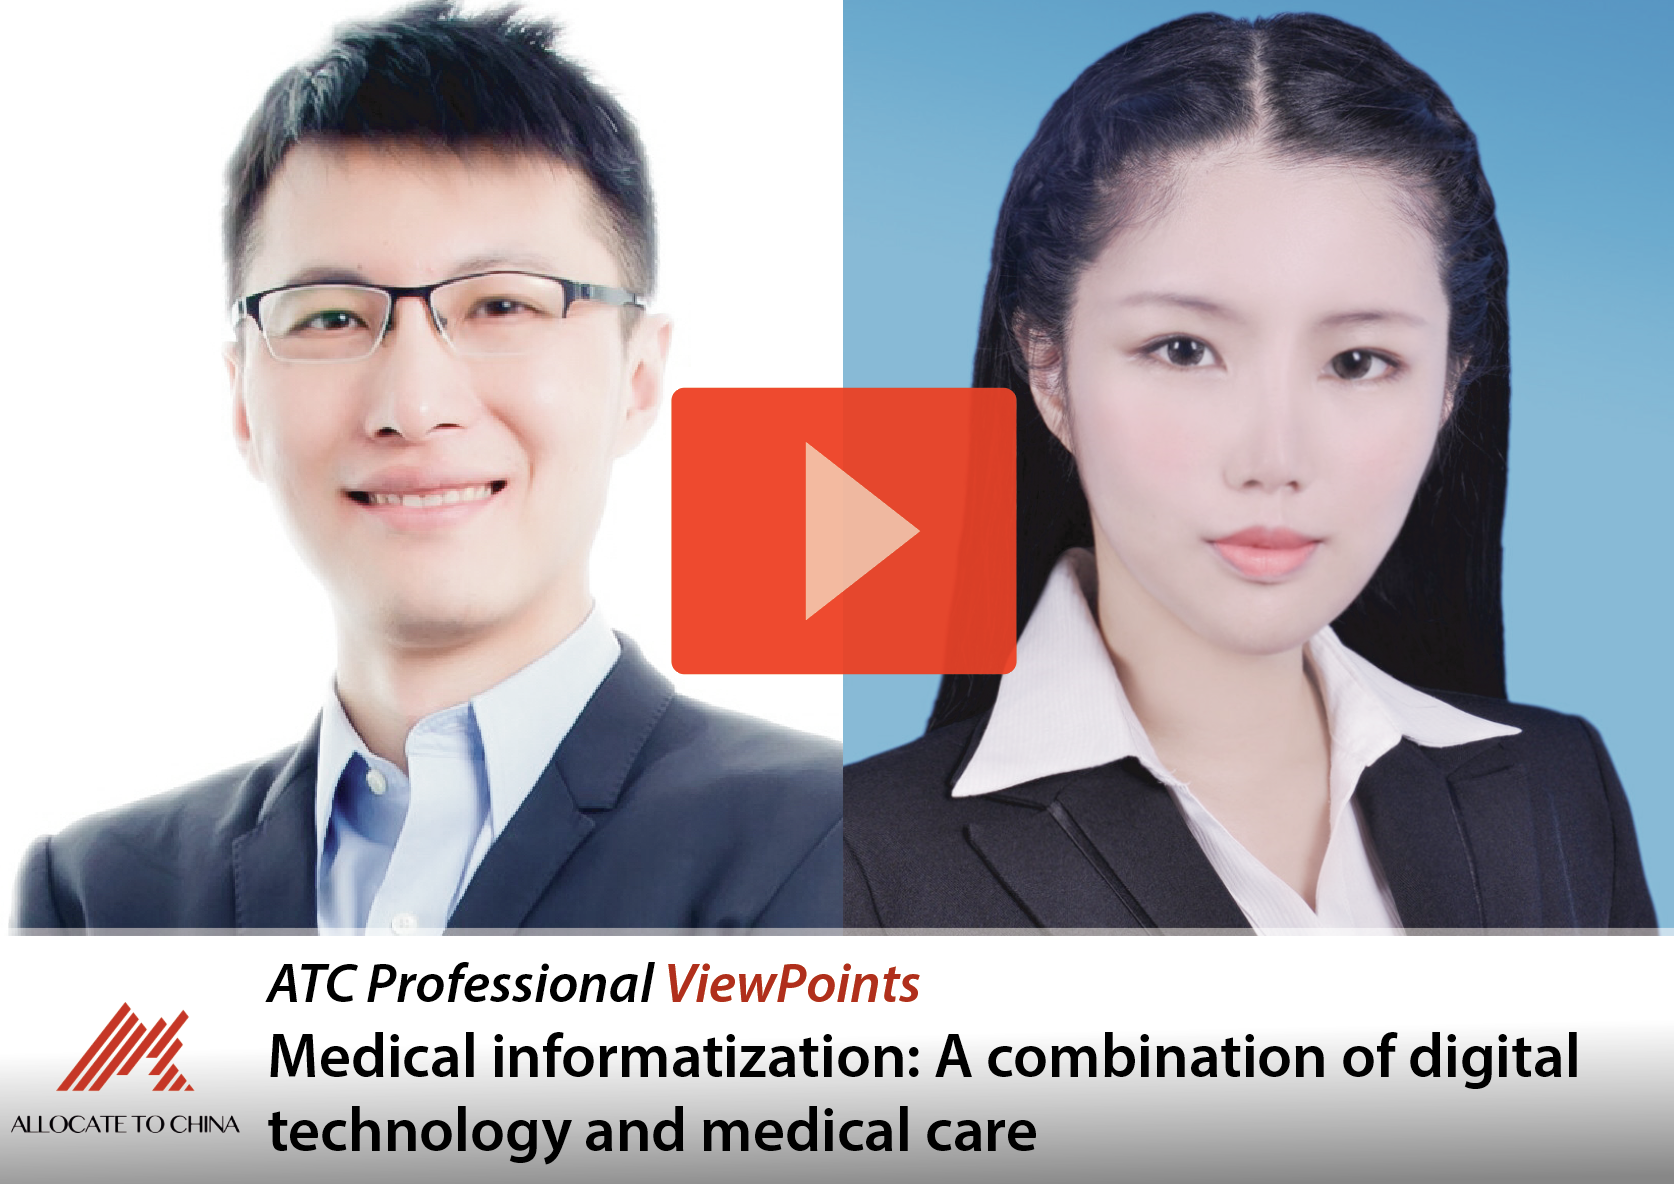 Medical informatization: A combination of digital technology and medical care